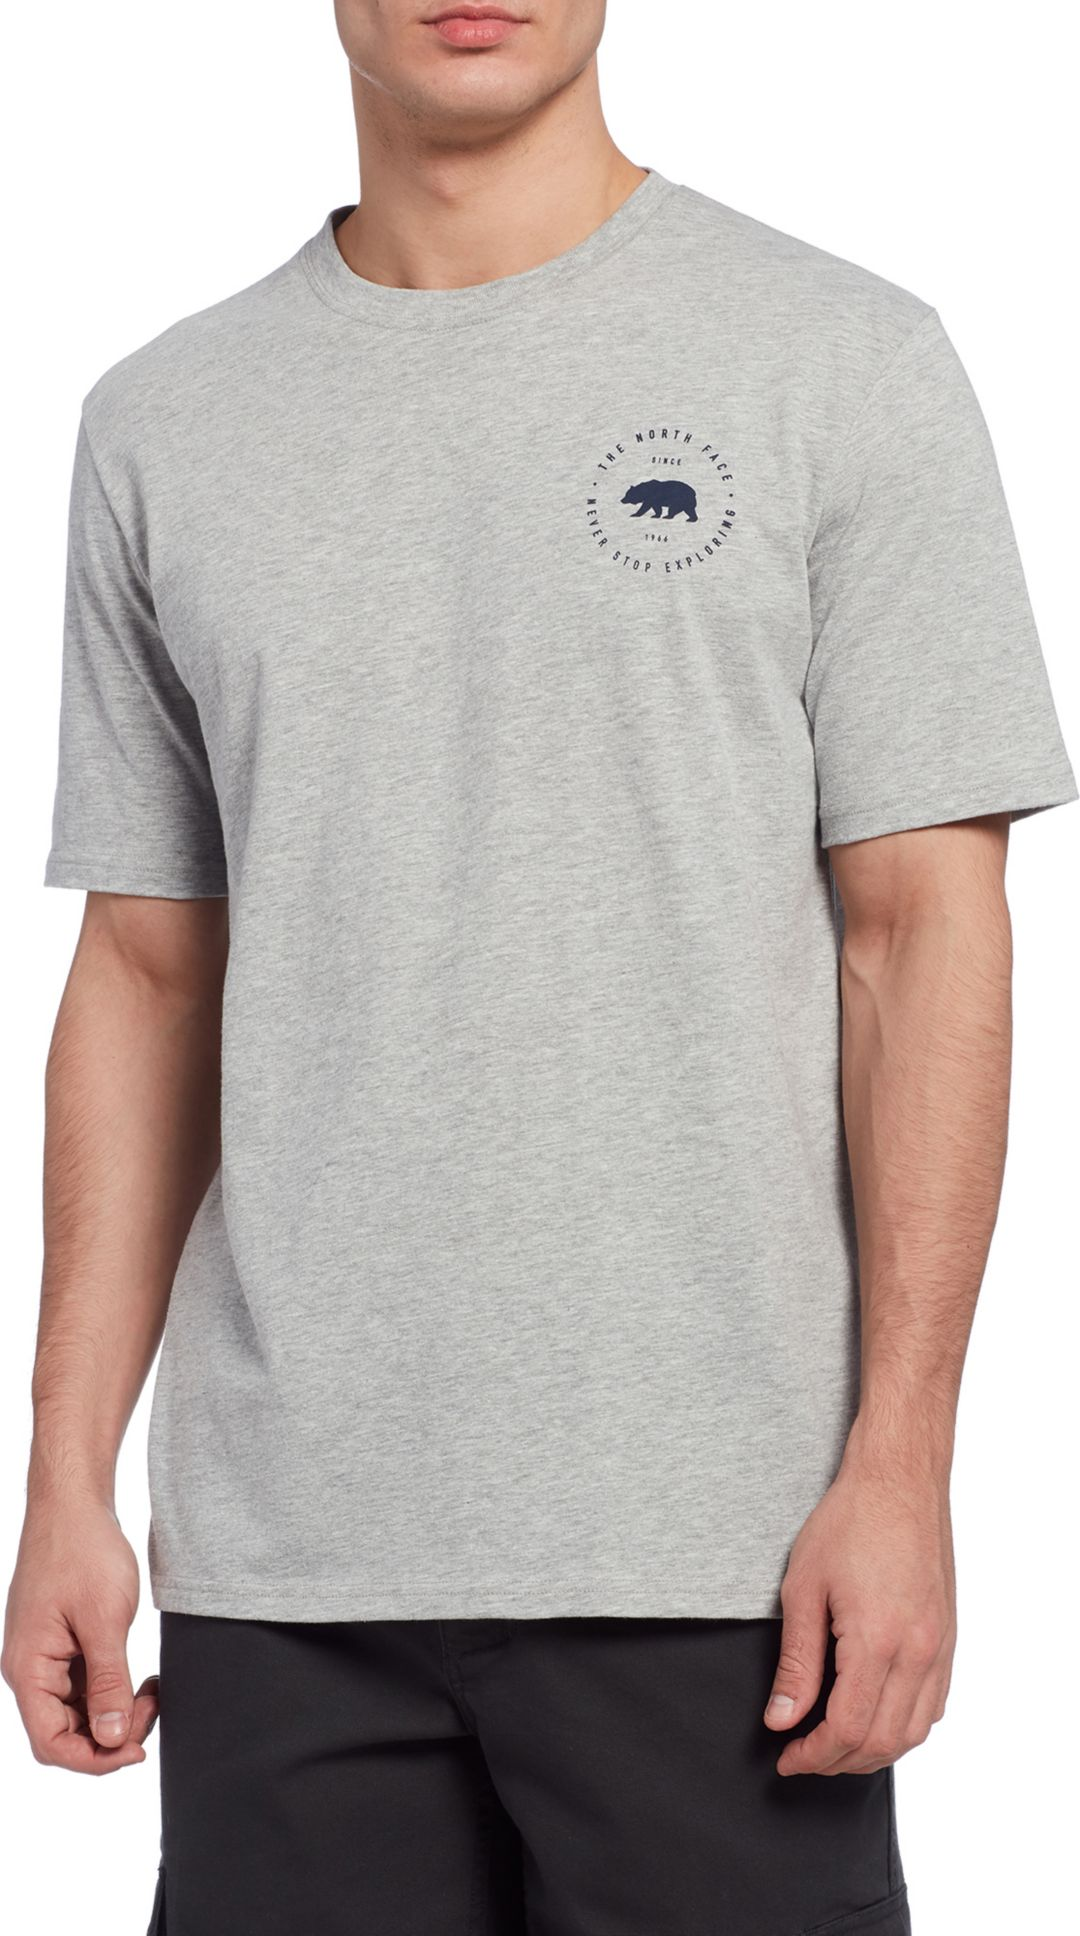 c60f74f72 The North Face Men's Bearitage Rights T-Shirt